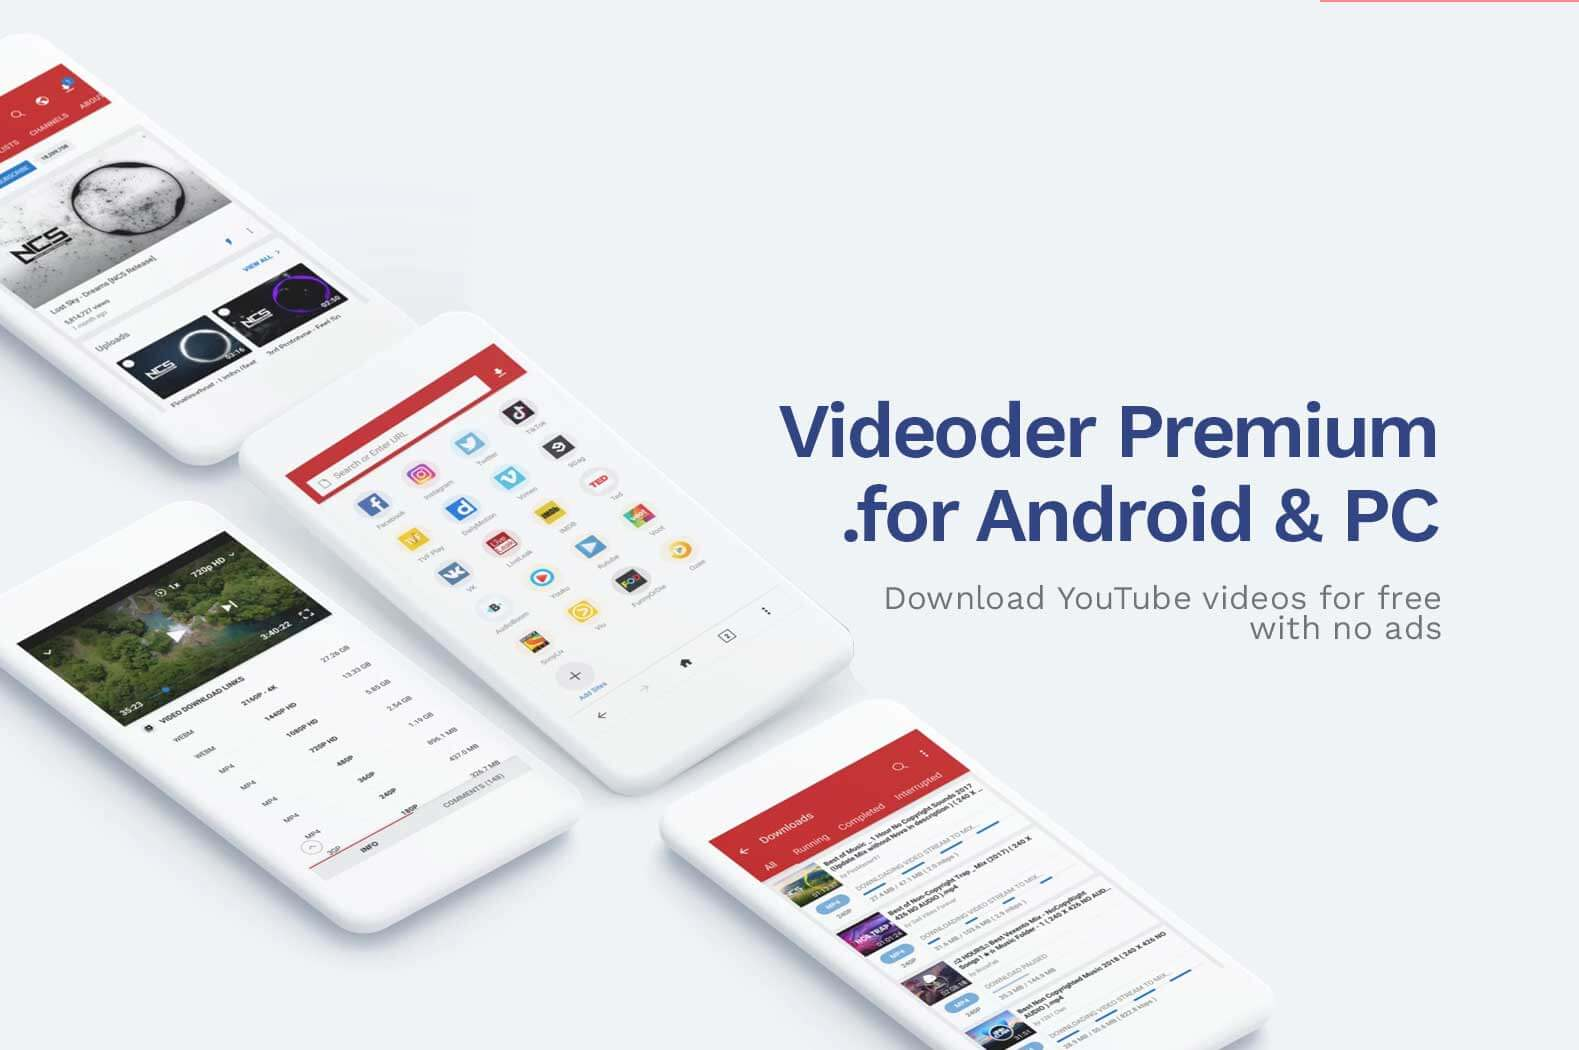 How To Download Videoder Premium APK for Android and PC